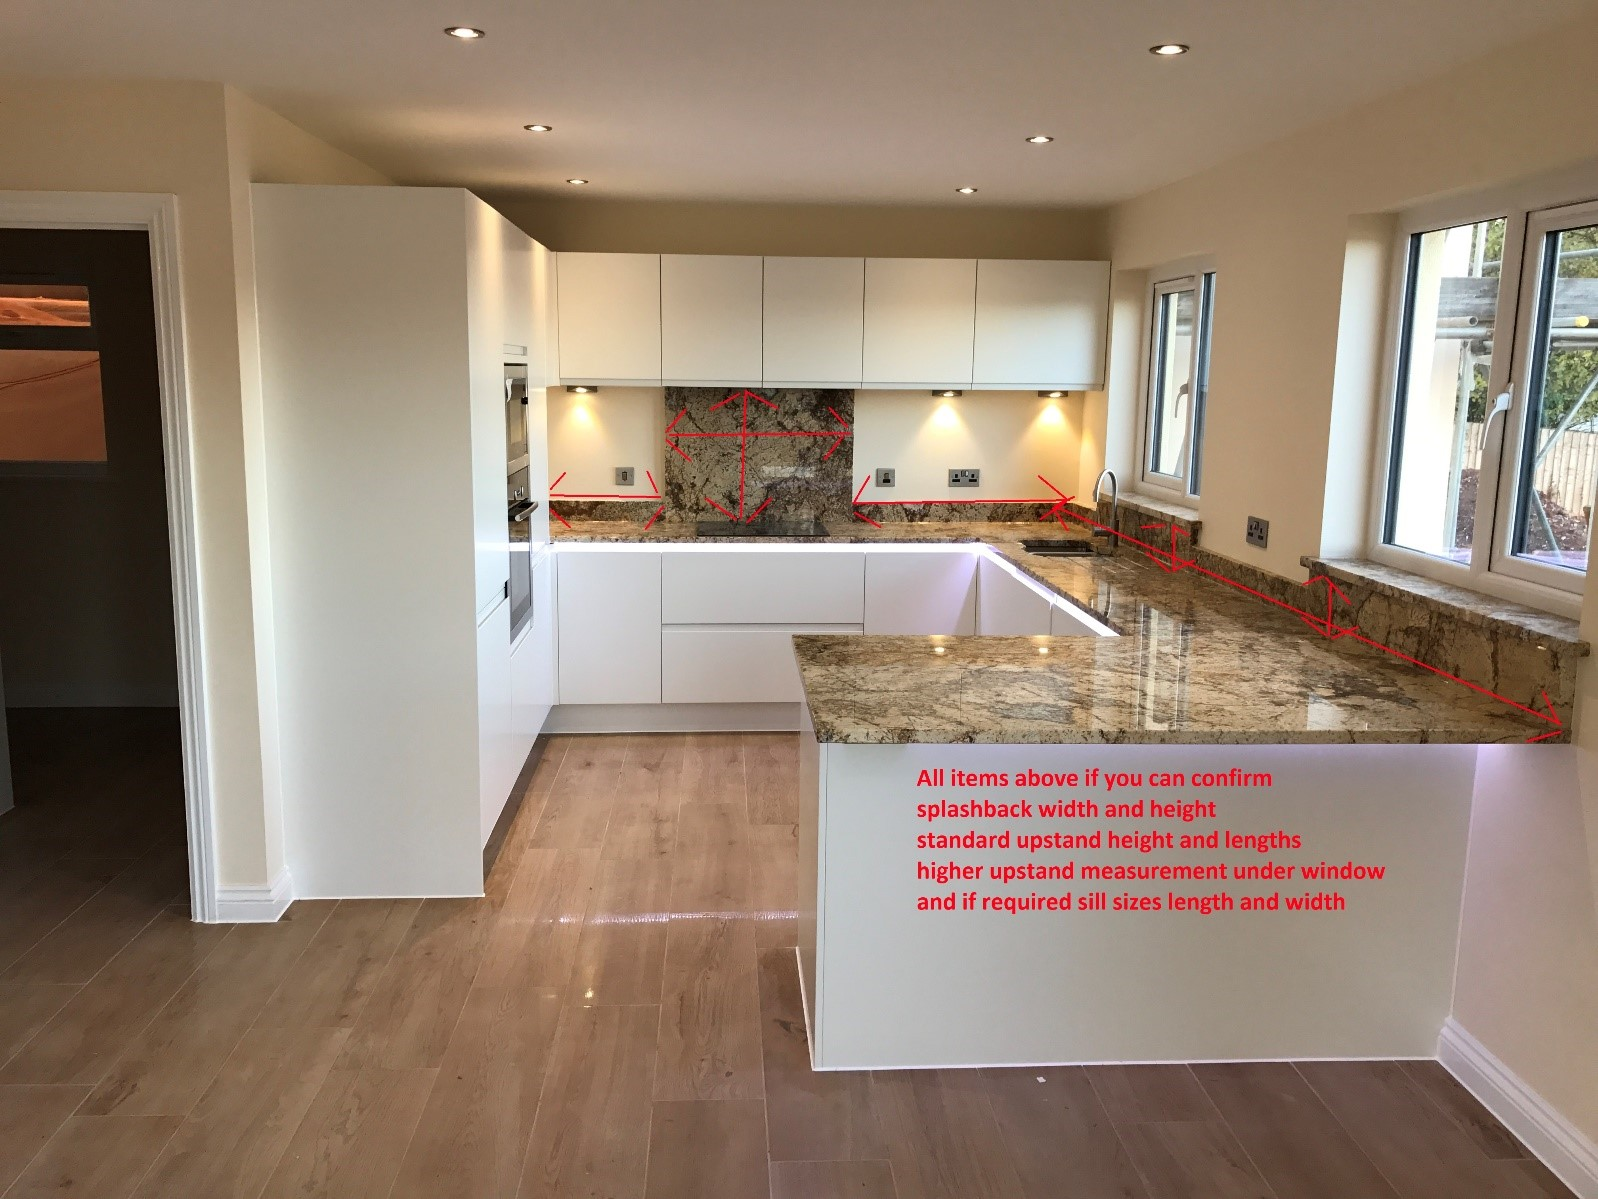 how to measure for a new worktop upstands, splashback and sills